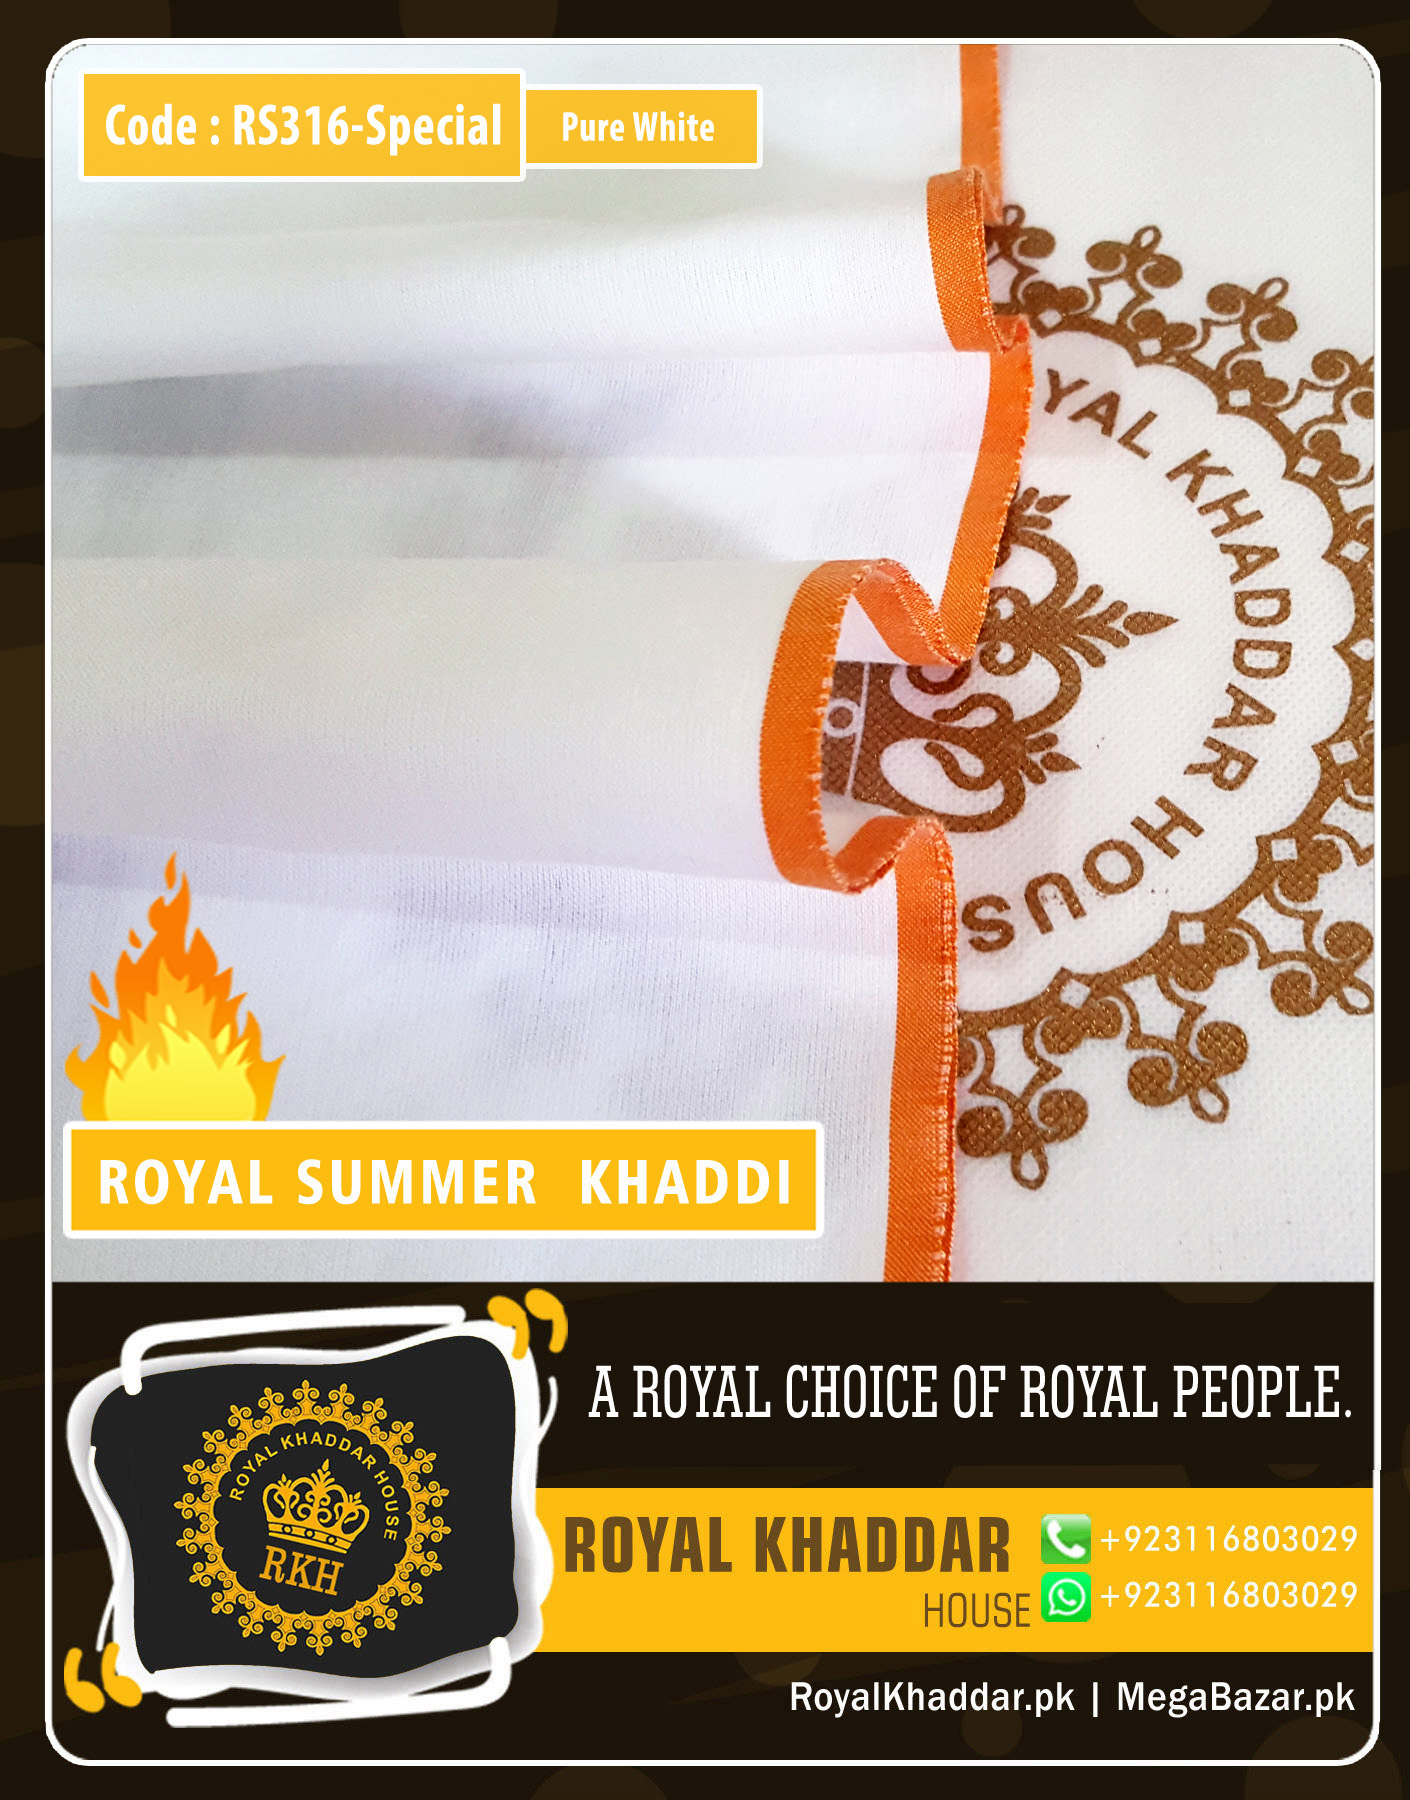 Pure White Special Royal Summer Khaddar RS316-Special